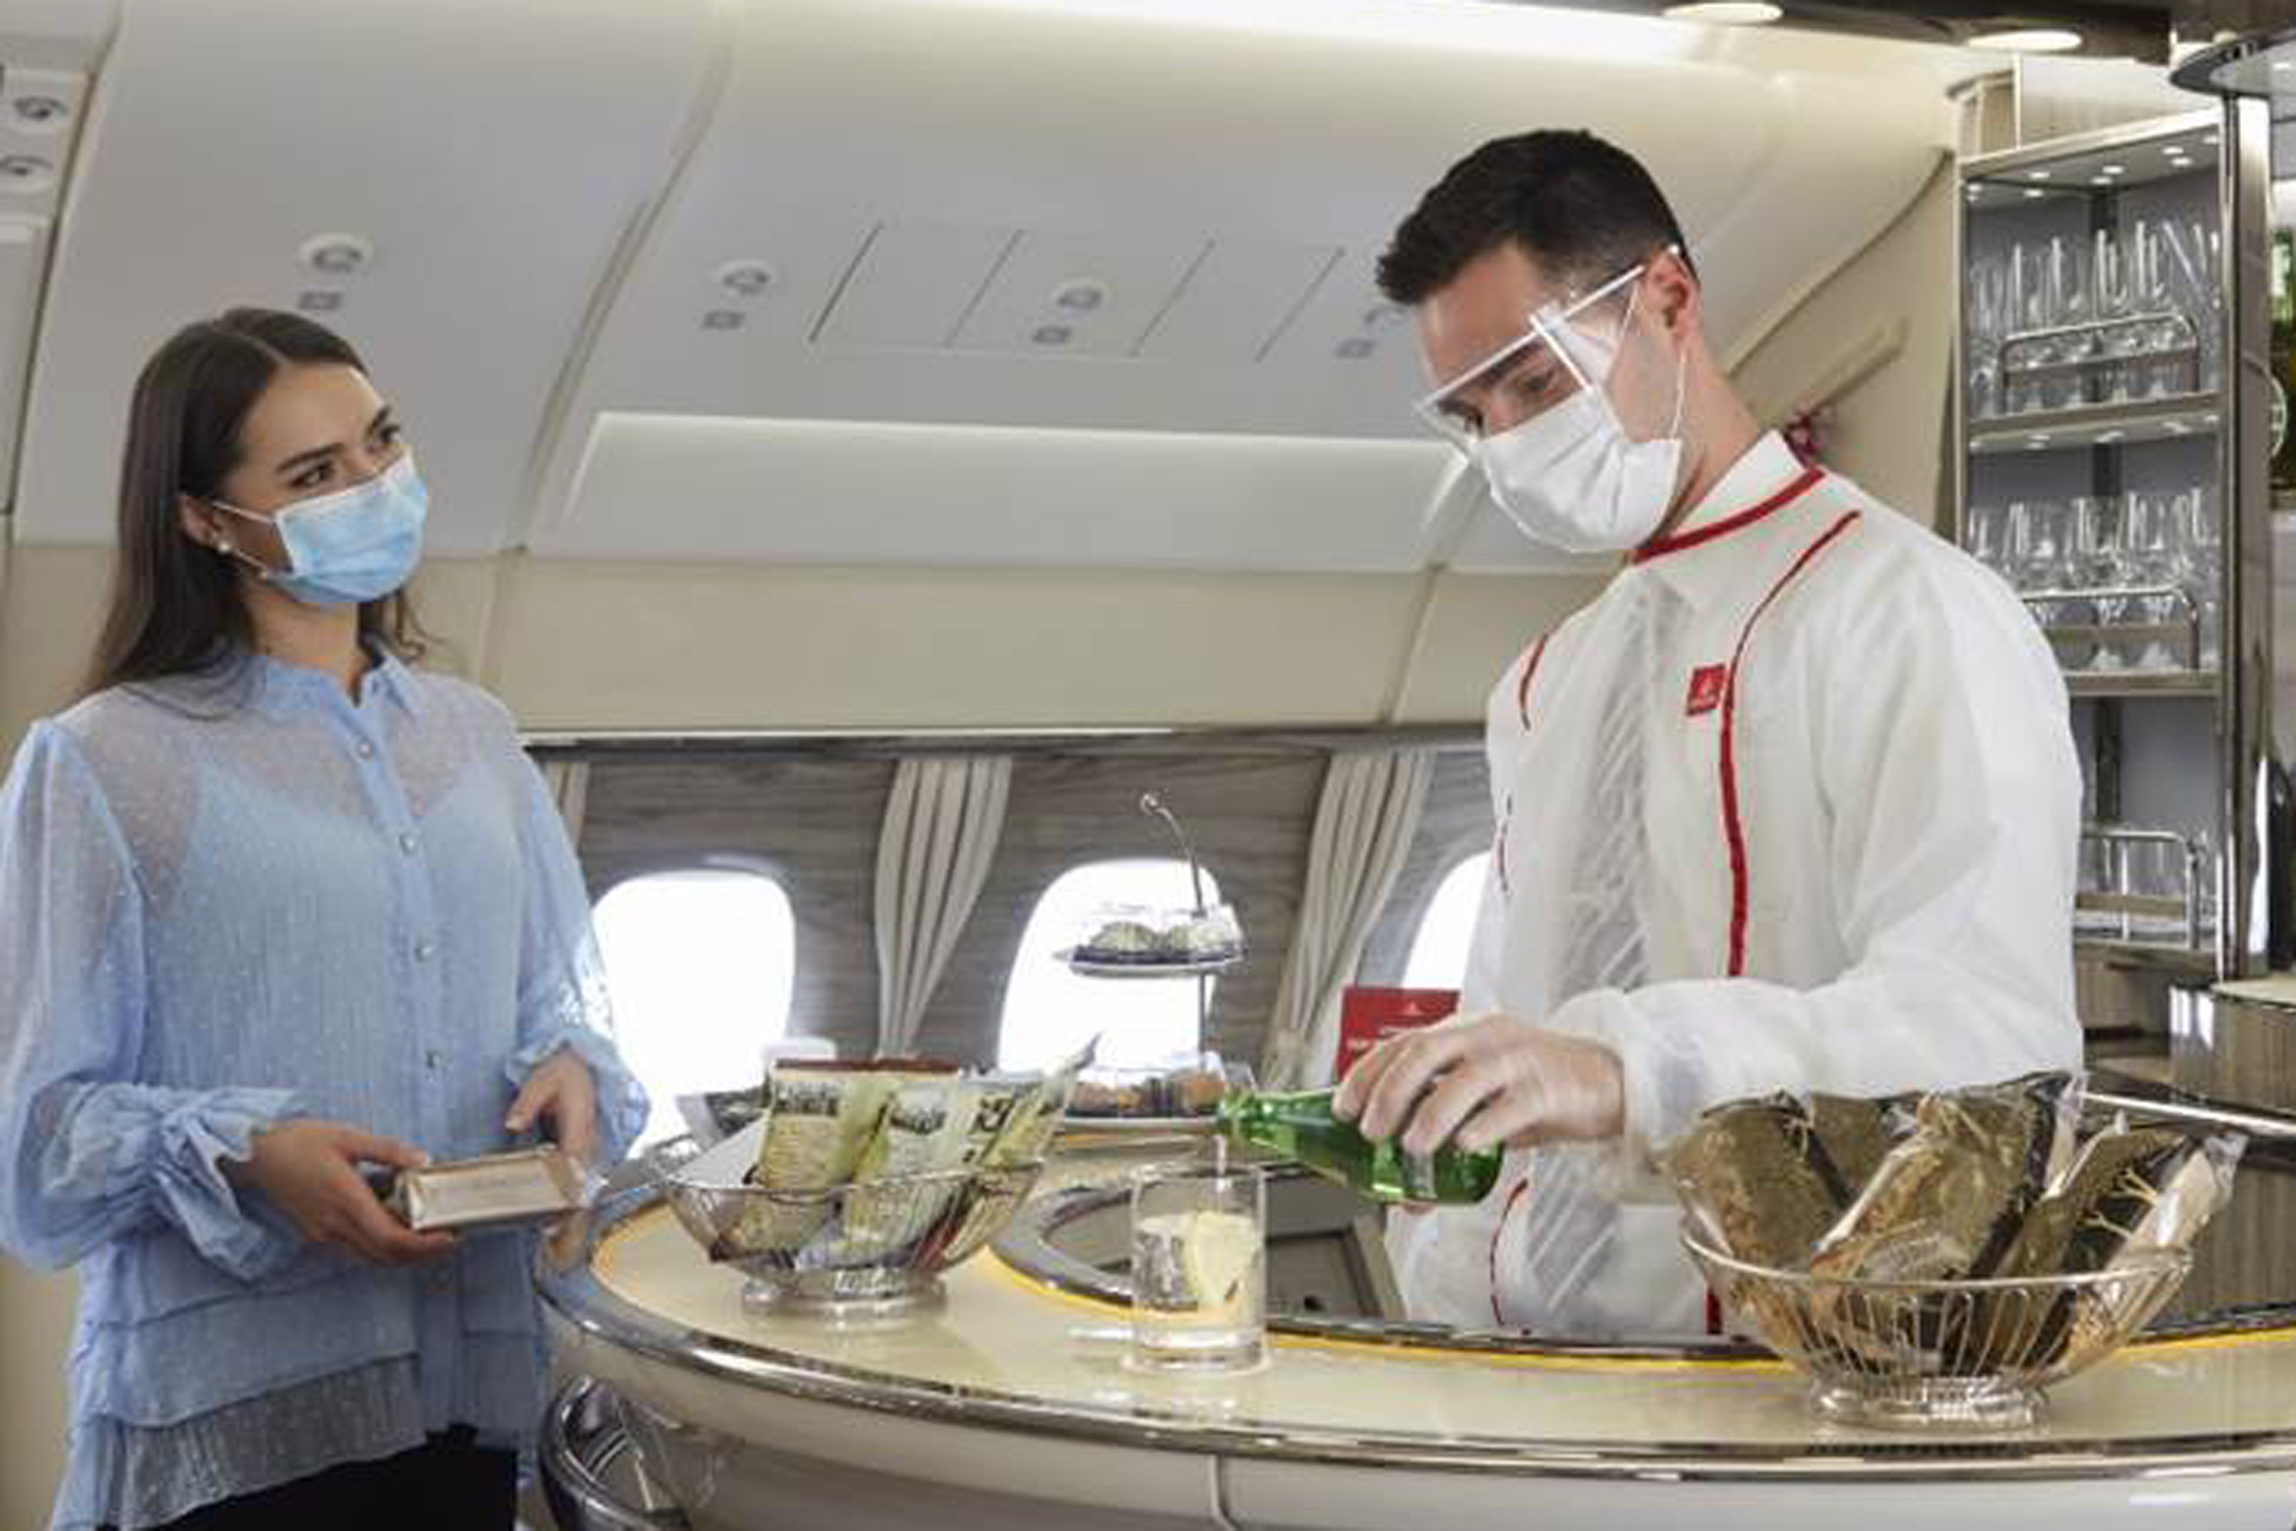 Emirates' premium passengers' bar has re-opened for takeaway drinks